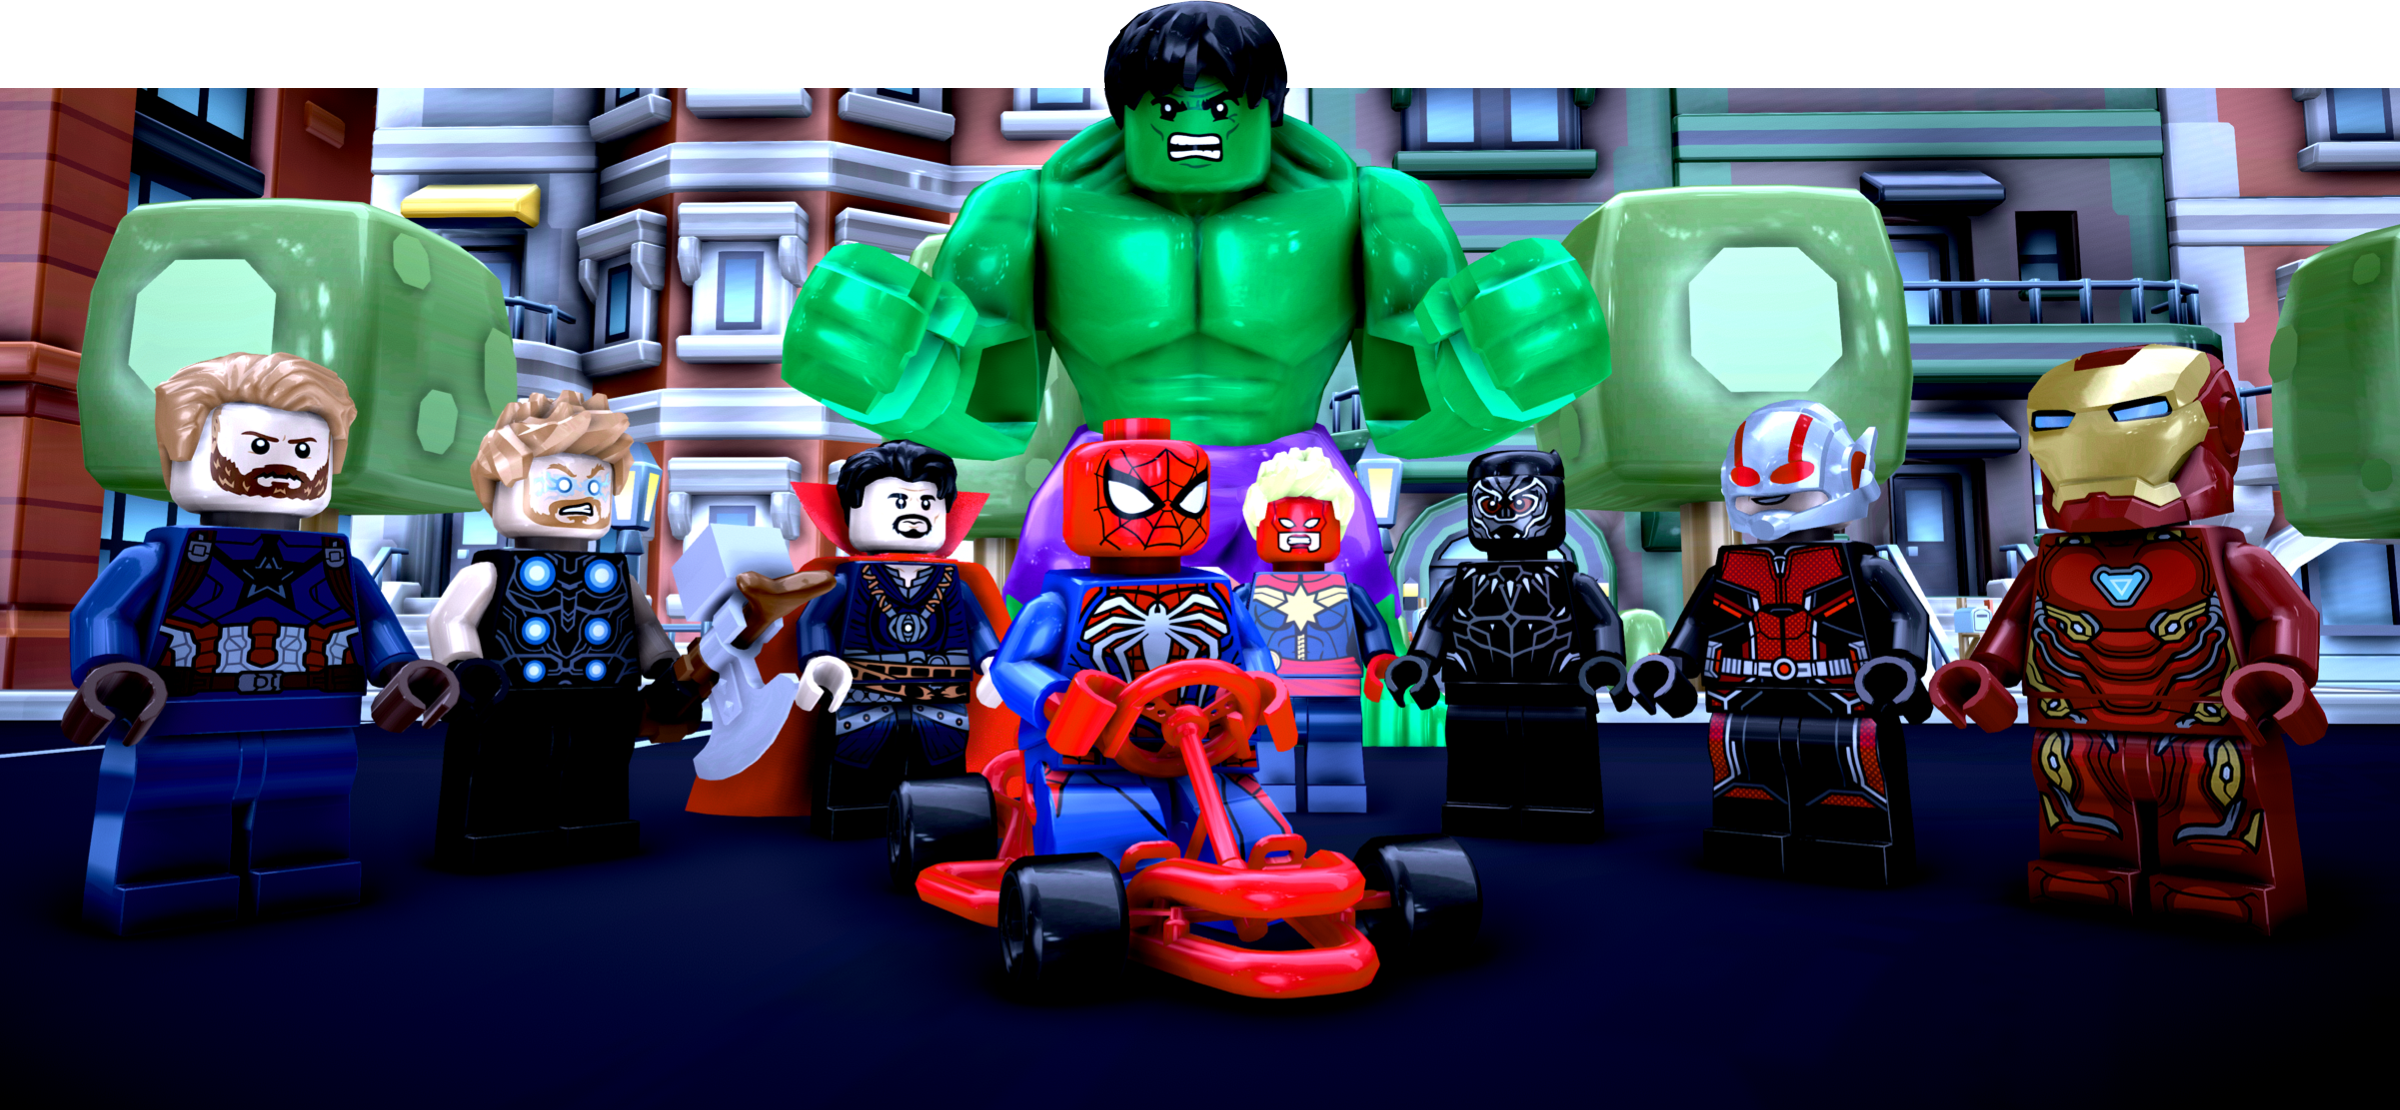 Paul Yanez Lego Kart Featuring the Avengers created by Indie Developer